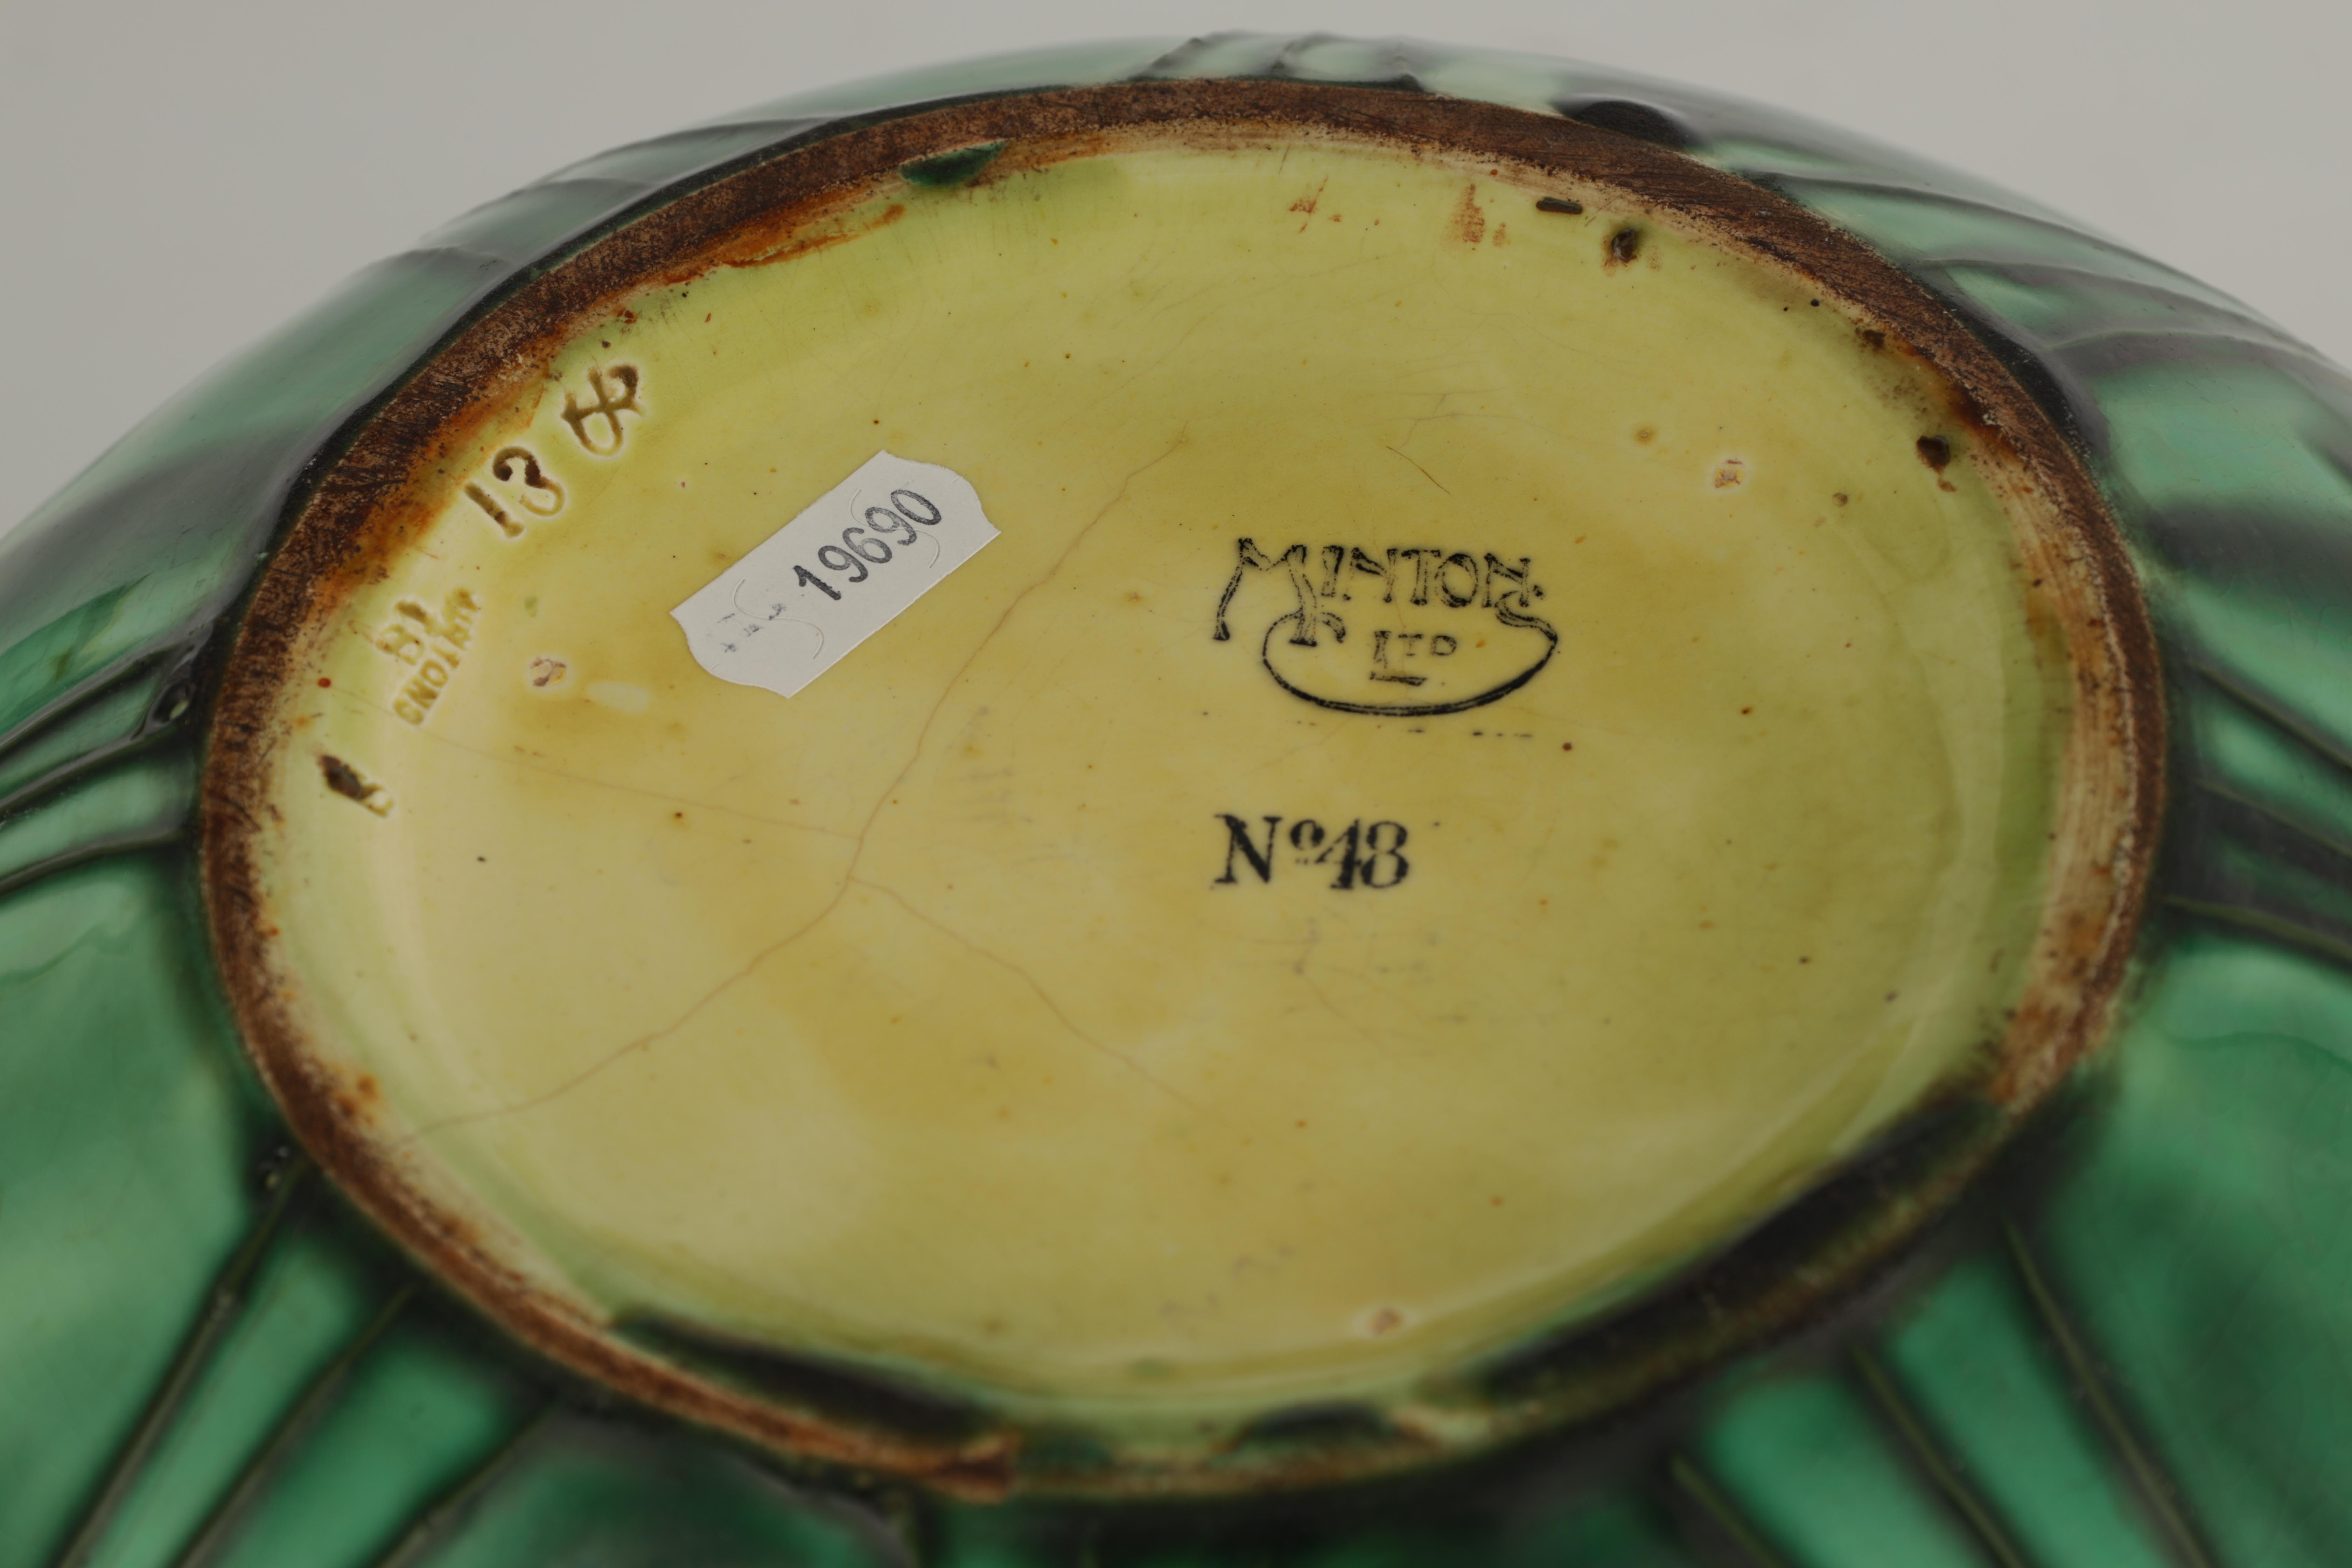 A MINTON LTD SECESSIONIST WARE LARGE BULBOUS JARDINIERE tube lined and decorated with stylised green - Image 5 of 5